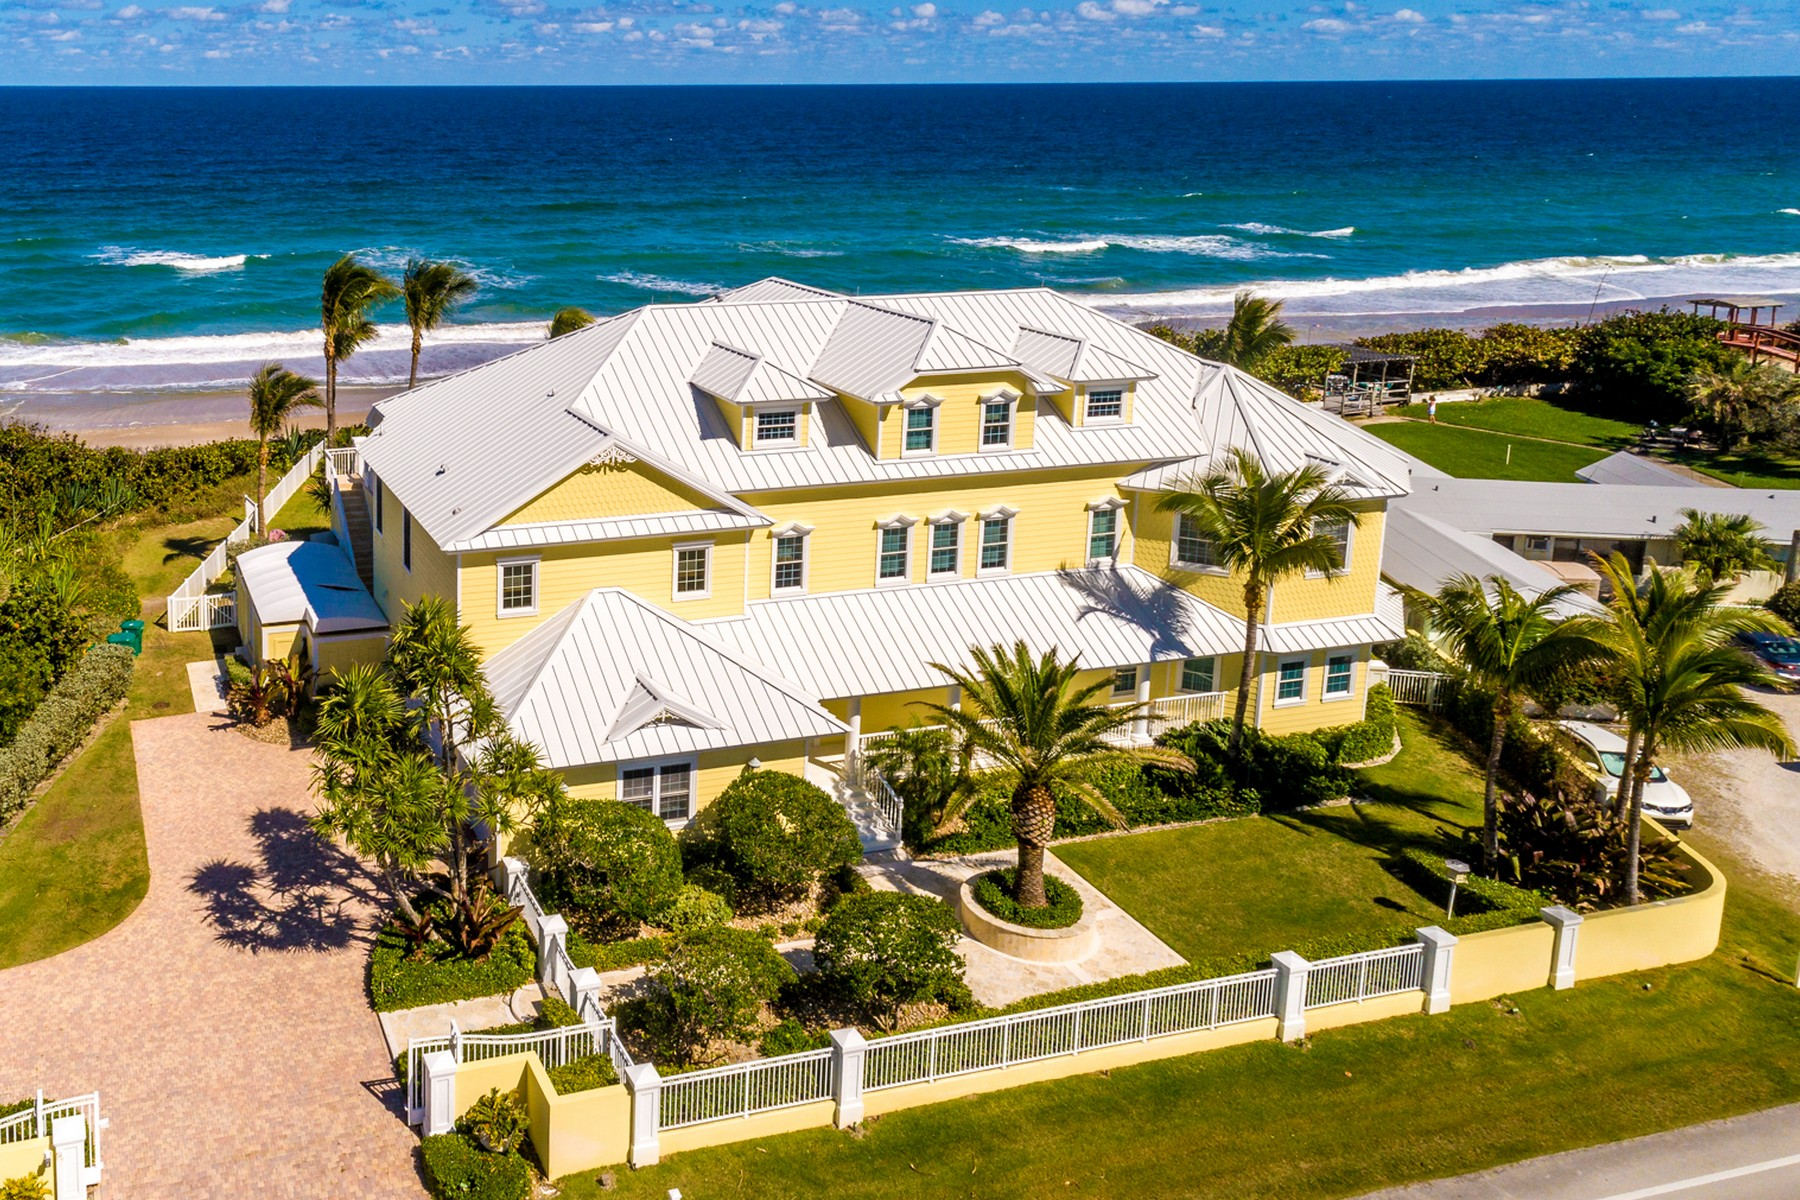 Single Family Homes için Satış at Gorgeous Tropically Landscaped Home with Endless Ocean Vistas 5045 S Highway A1A, Melbourne Beach, Florida 32951 Amerika Birleşik Devletleri